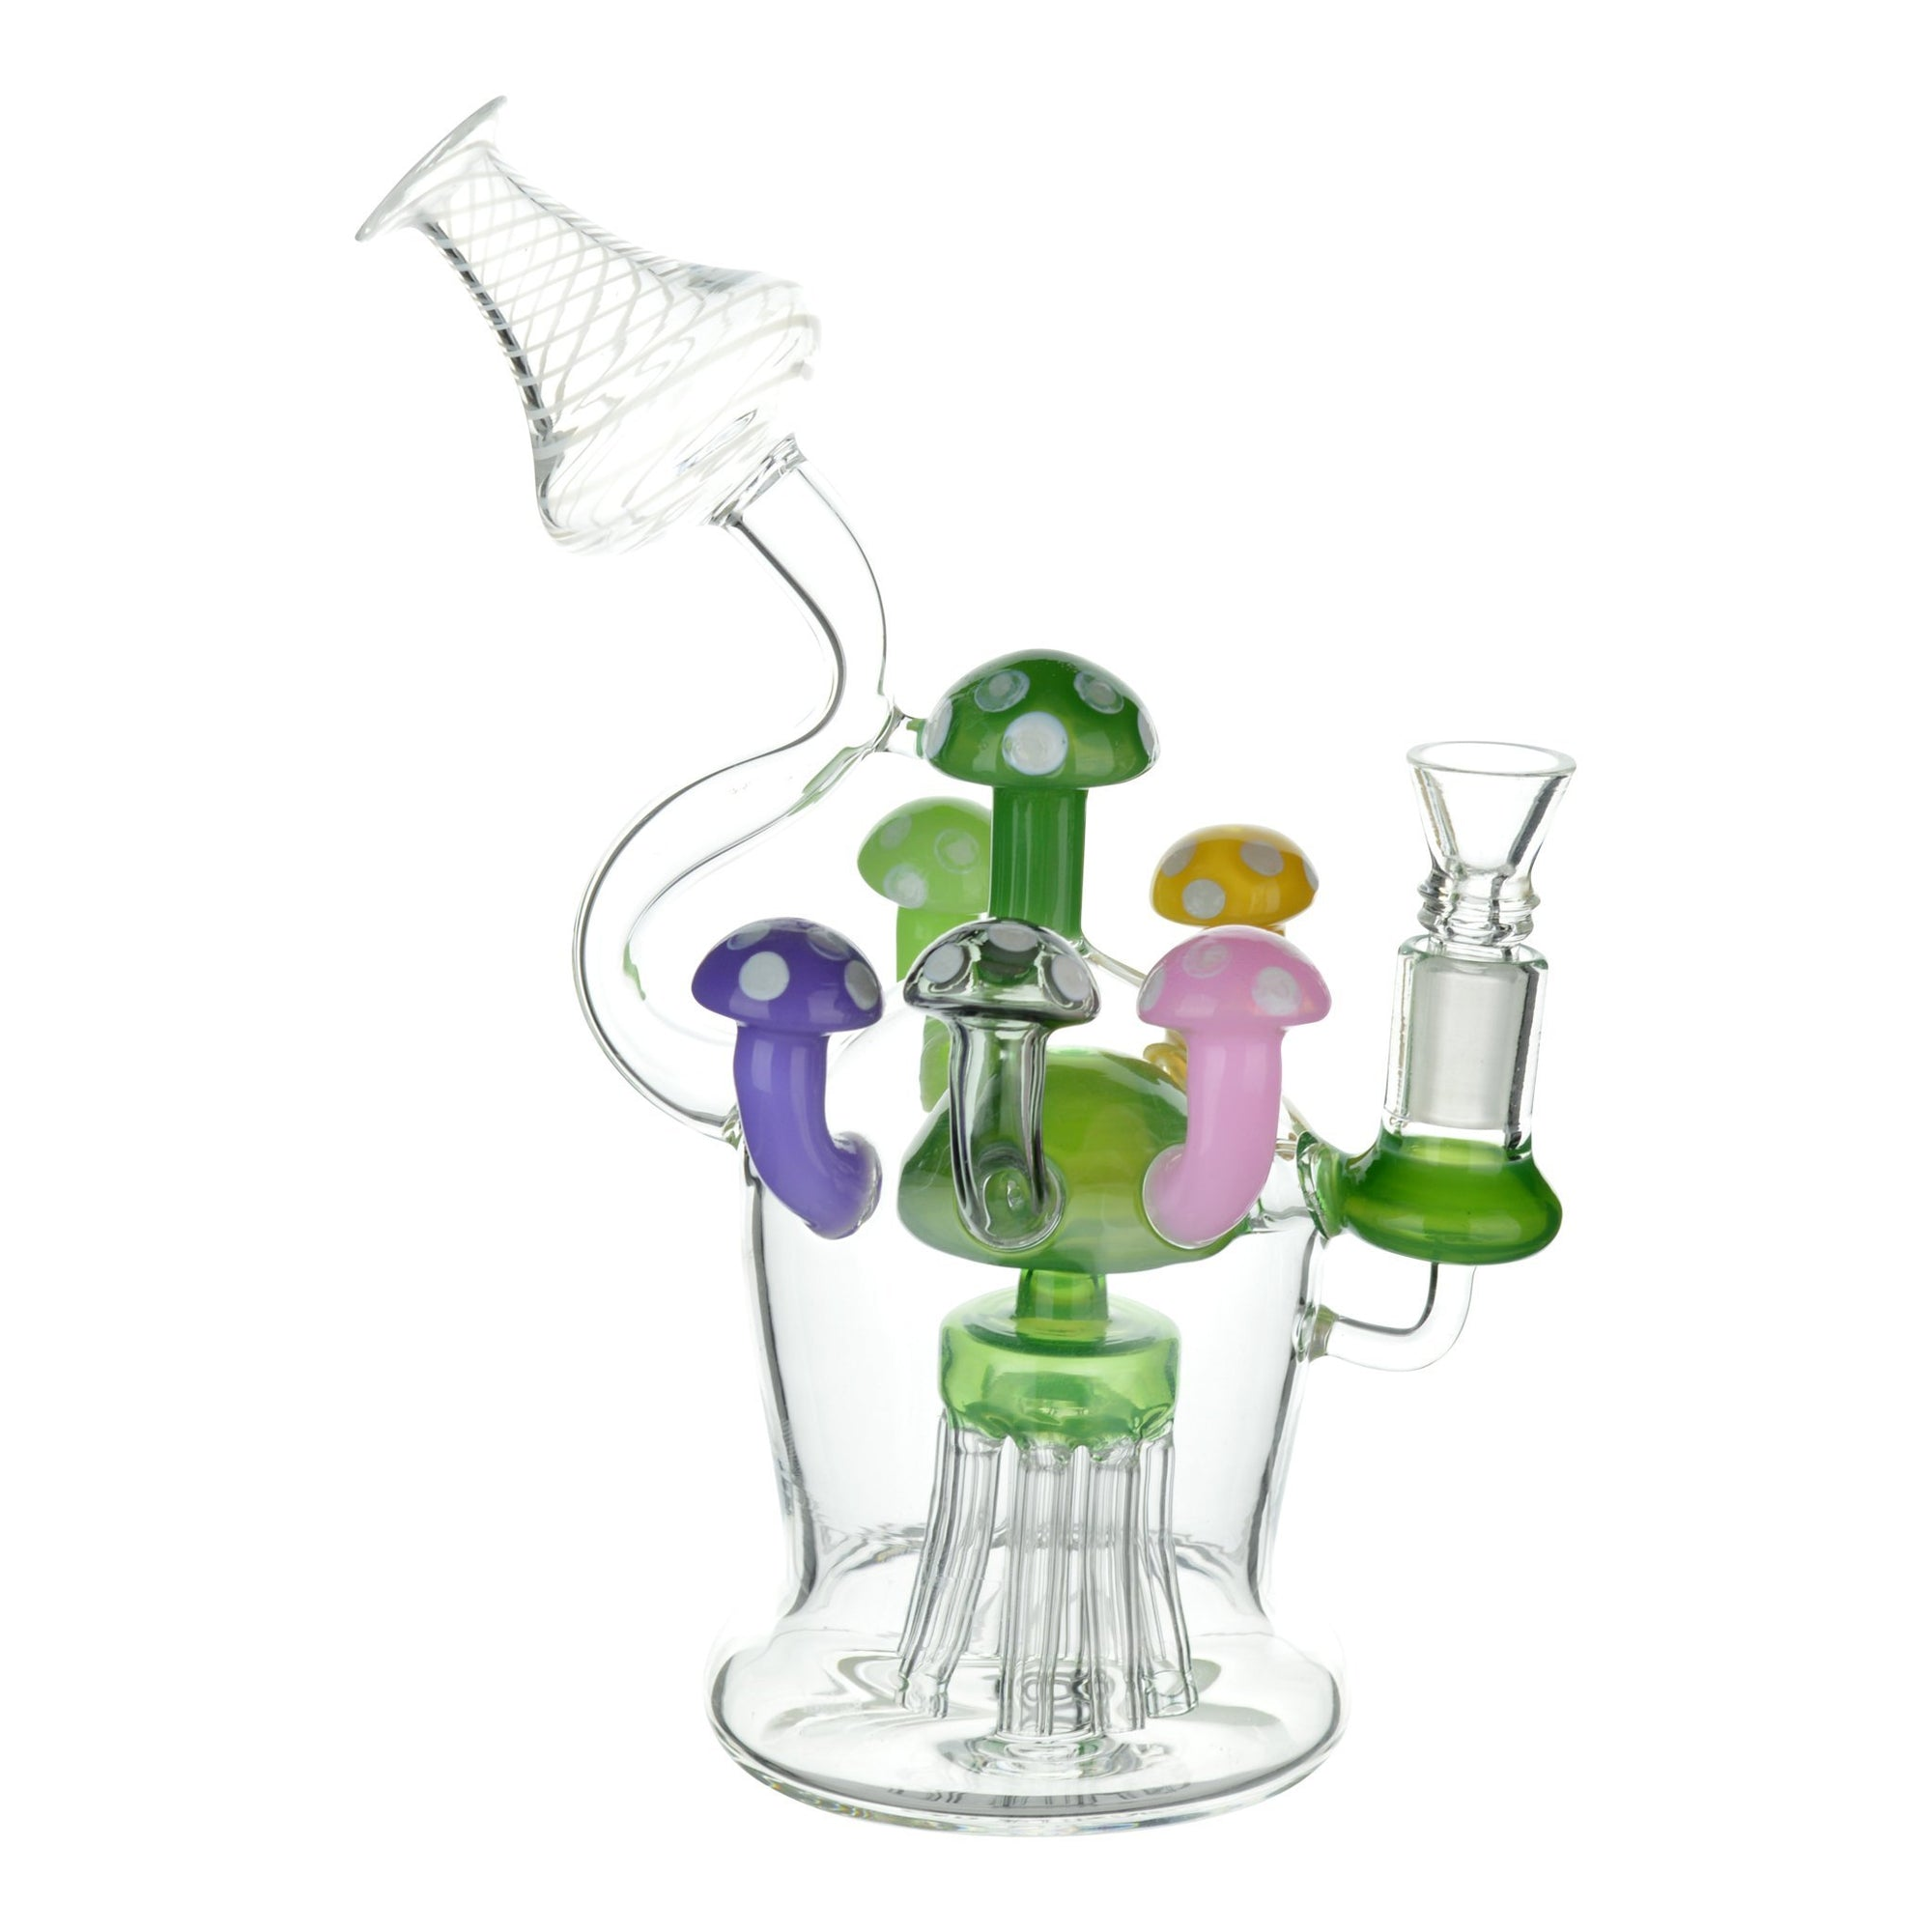 Full shot of glass recycler dab rig with colord mushroom percs mouthpiece facing left bowl on right